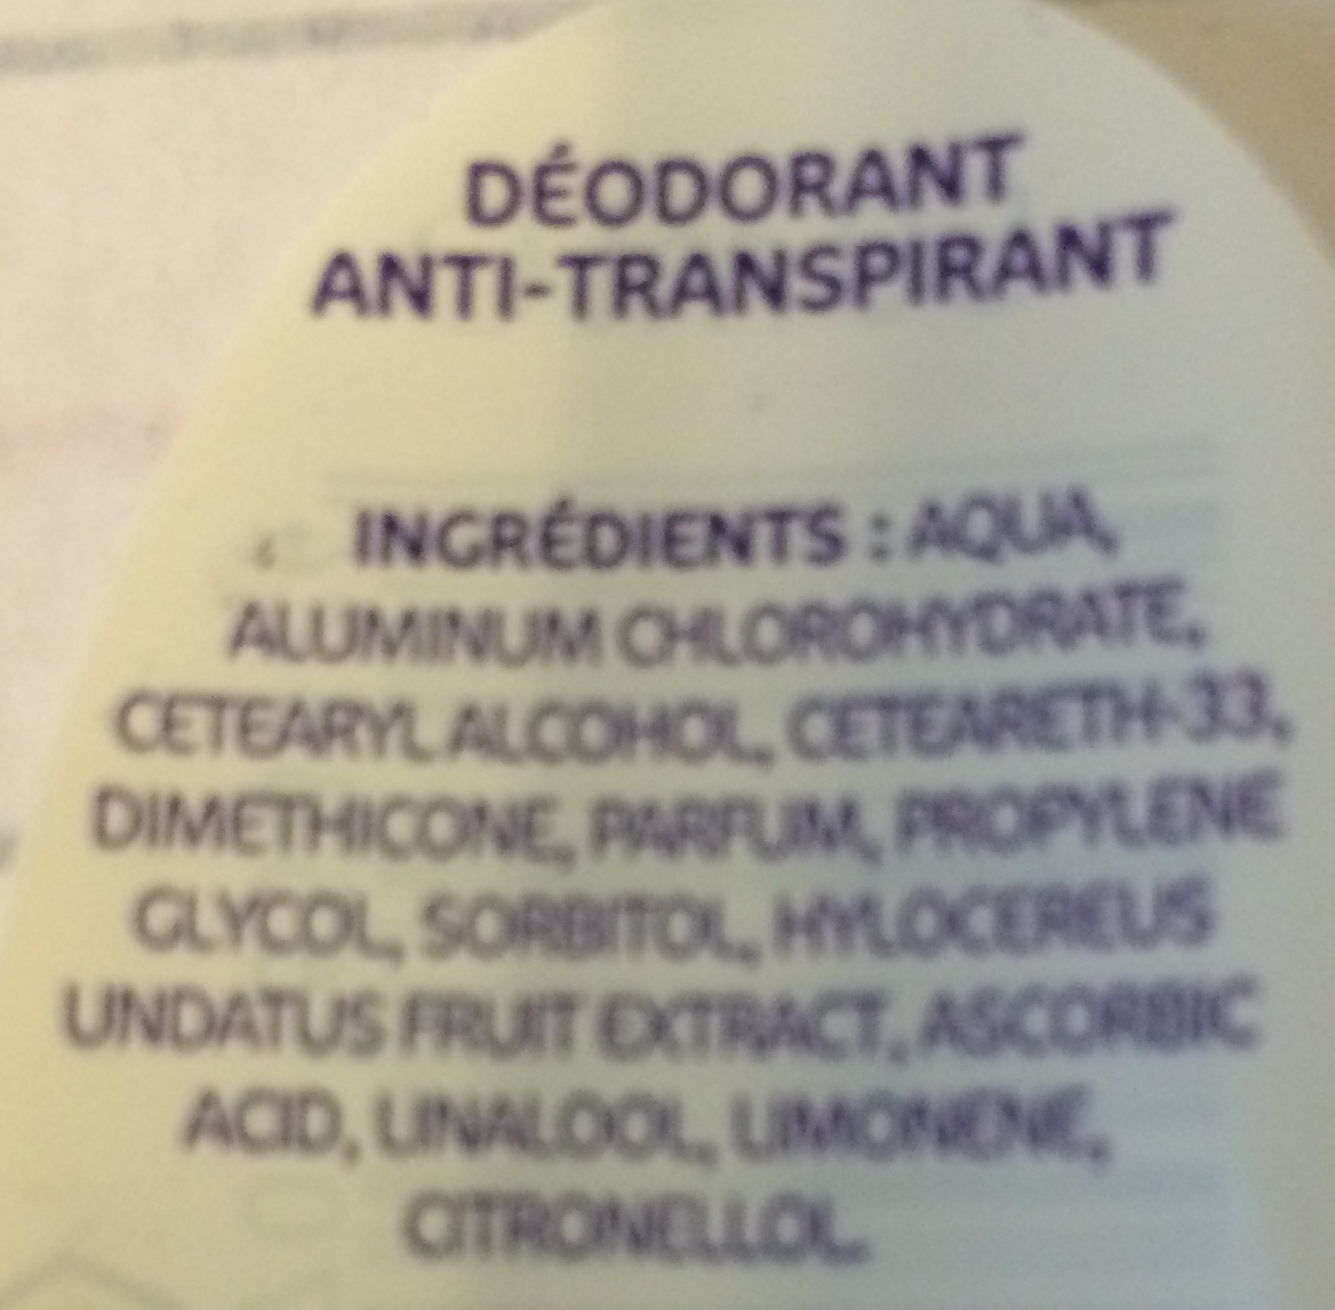 Fruit du dragon Anti-transpirant, anti-traces - Ingredients